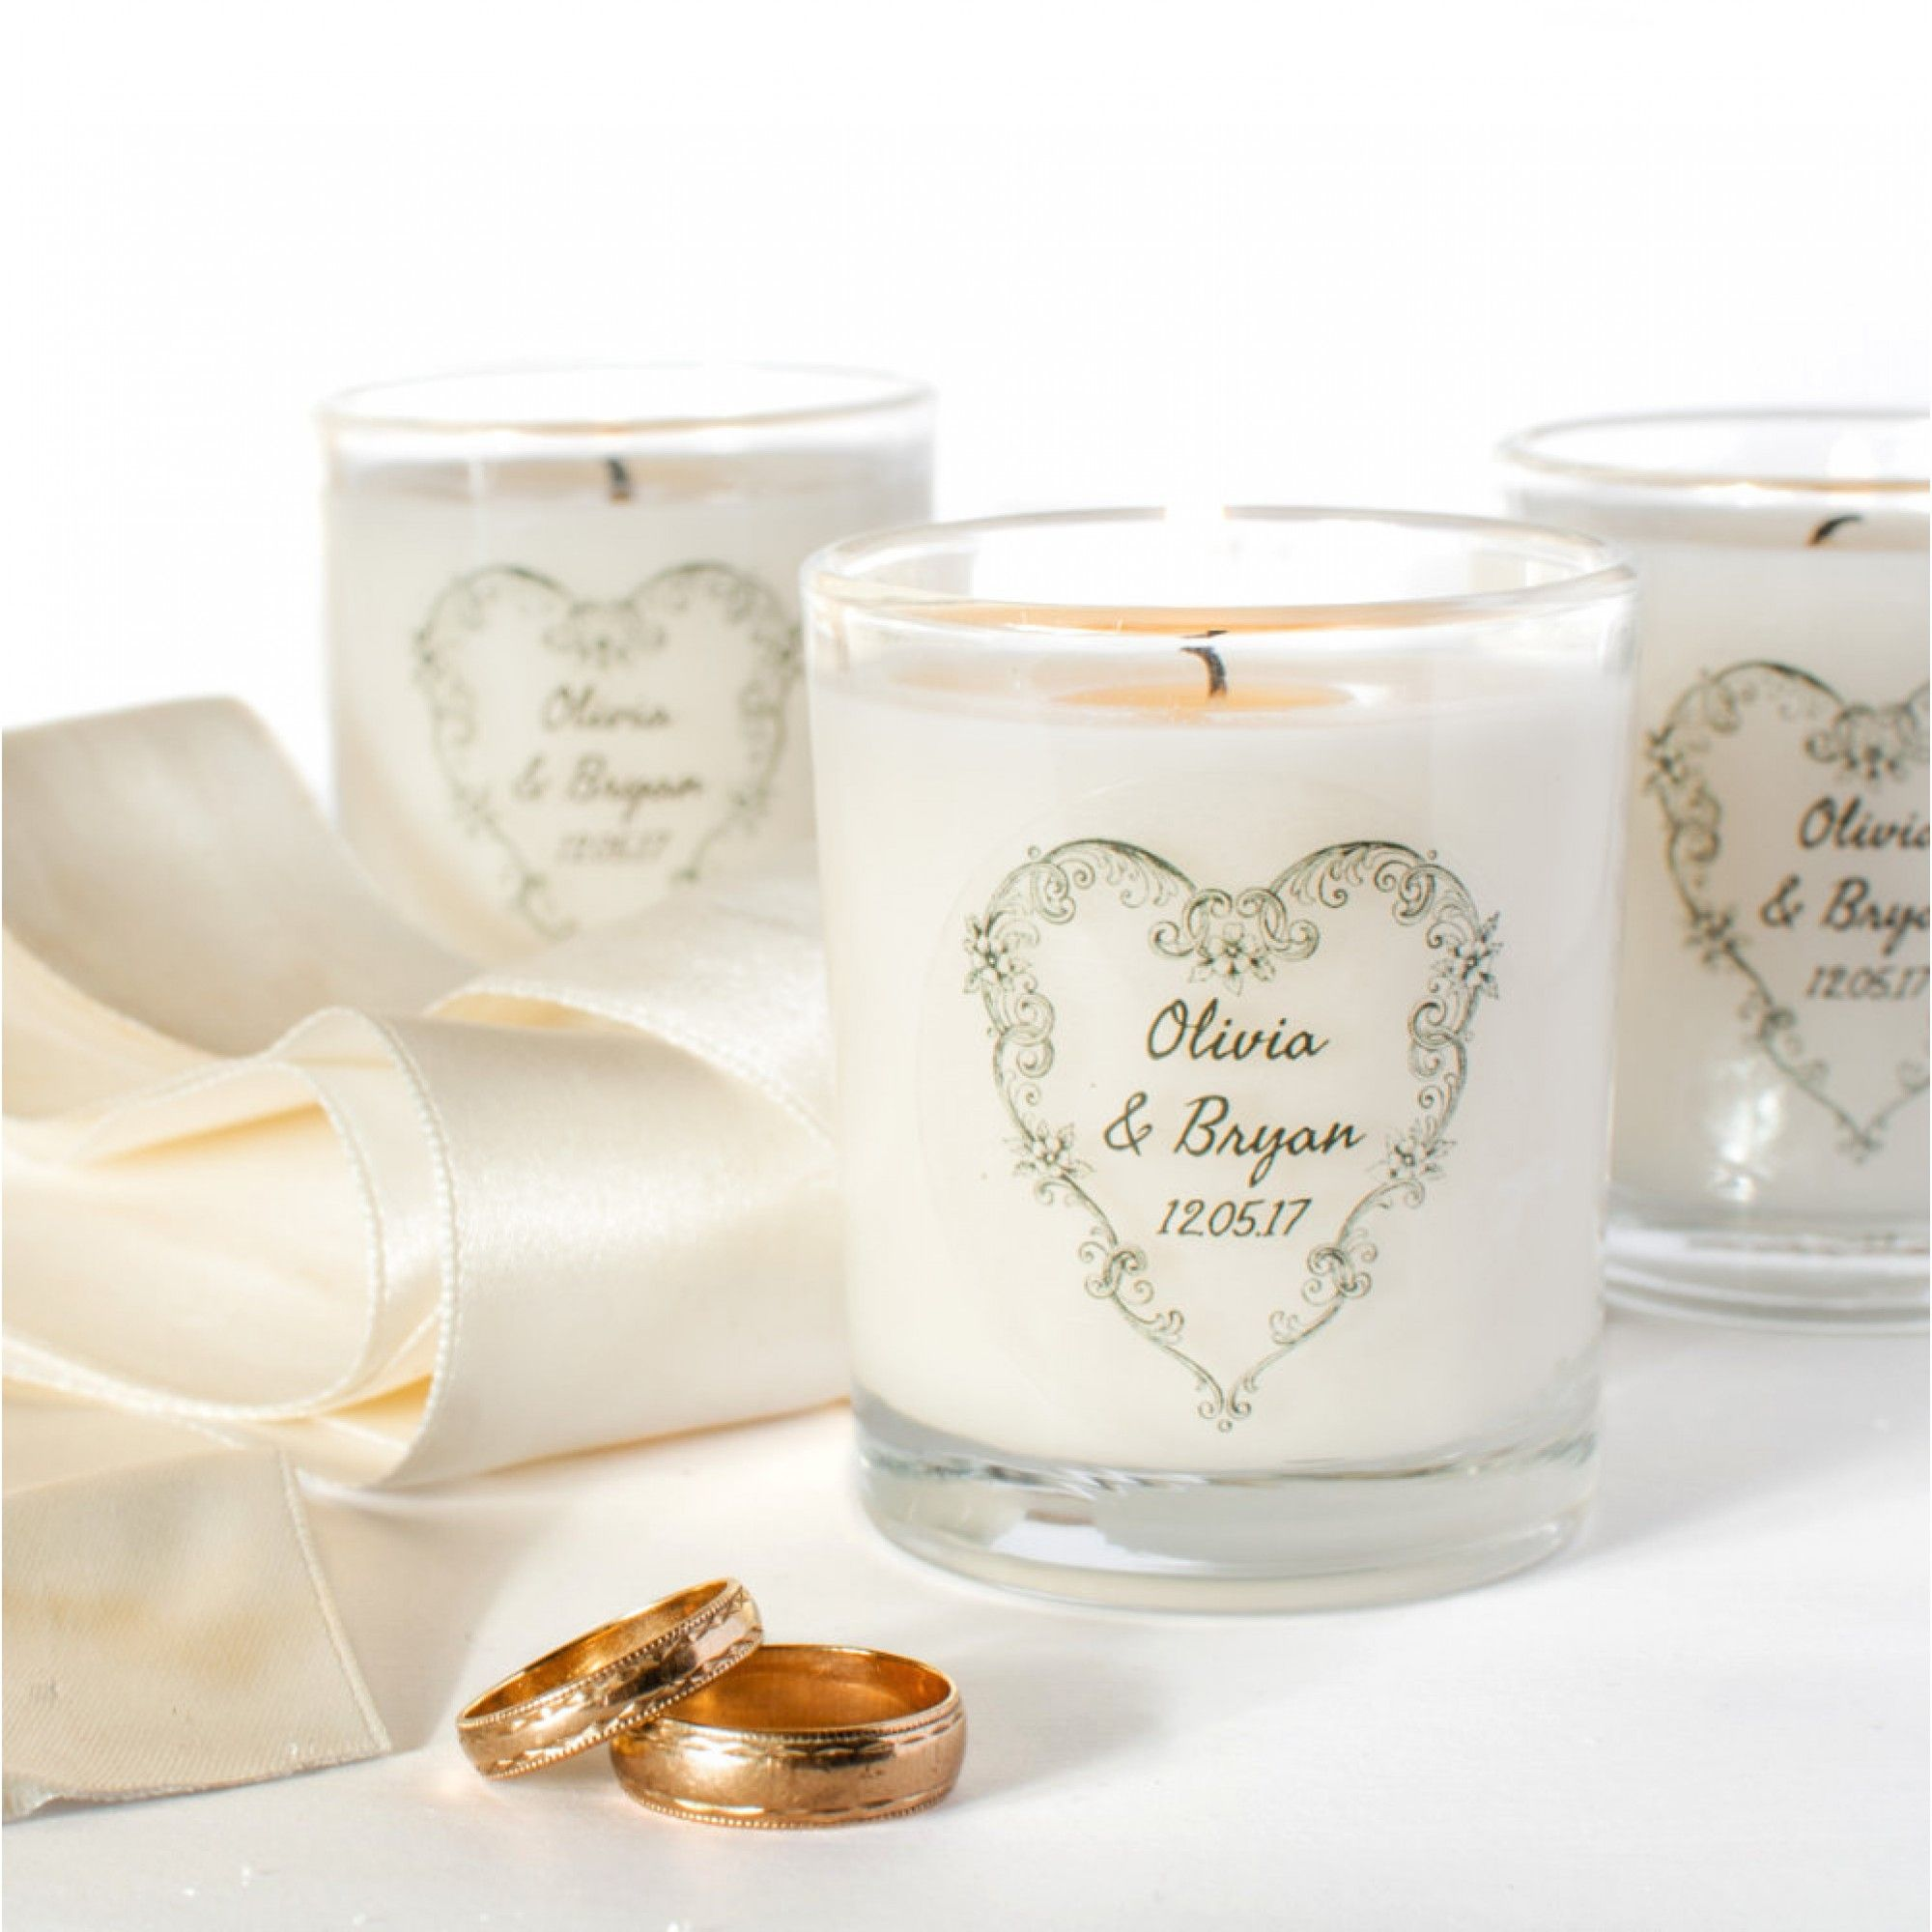 Personalised Wedding Favour Candles In 2020 Candle Wedding Favors Personalized Candle Wedding Favors Wedding Favours Uk